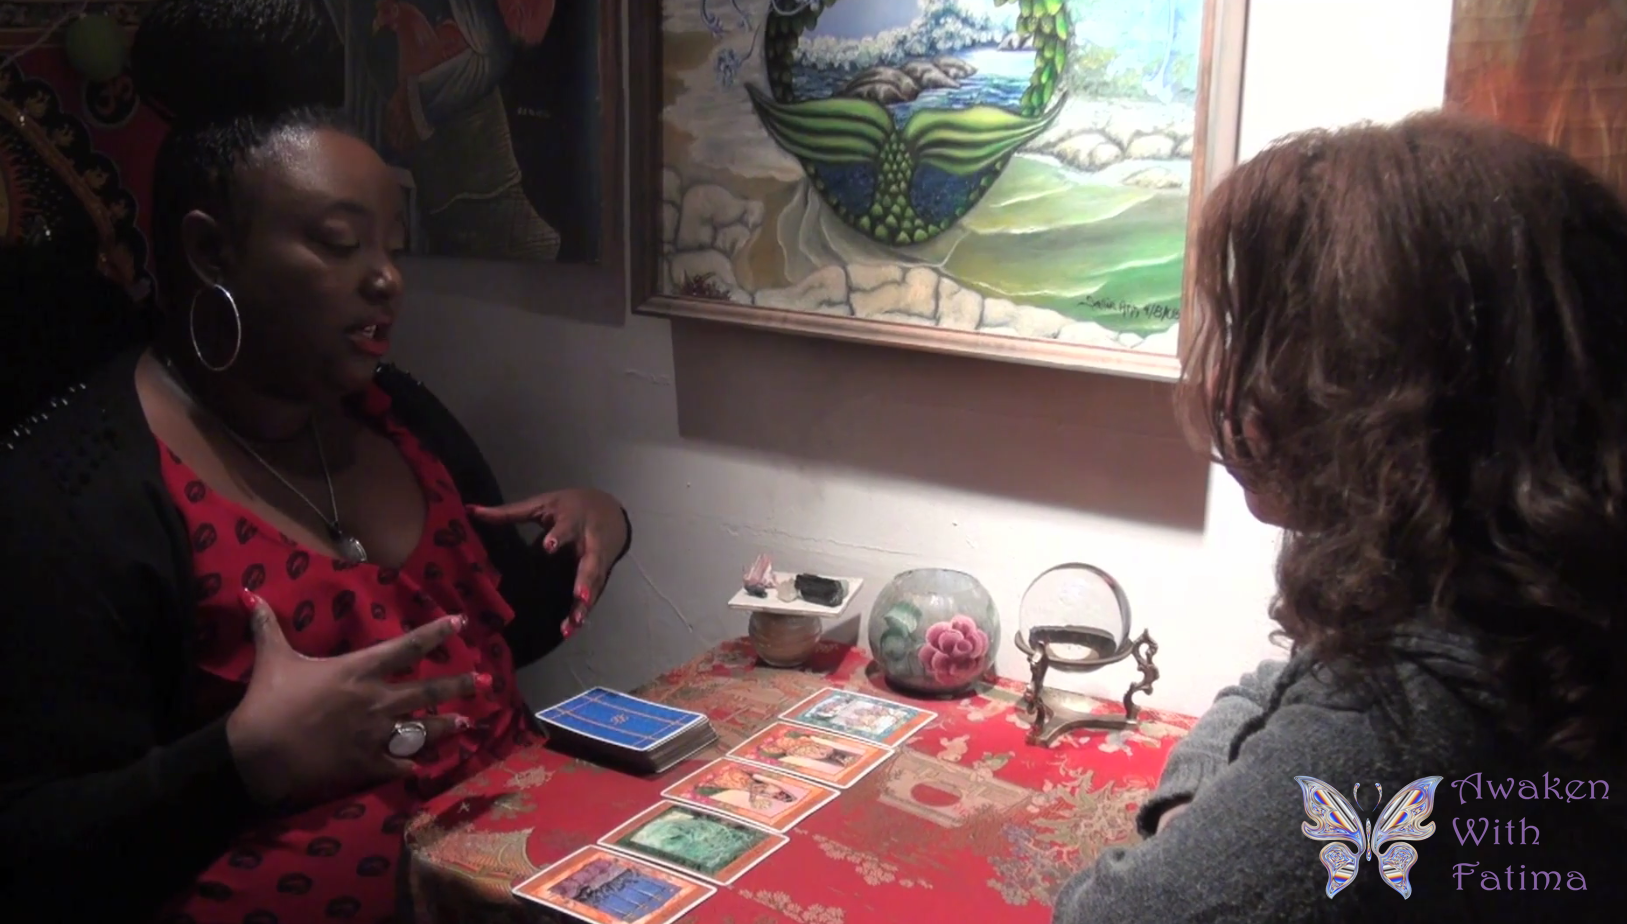 Tarot Card Readings from Fatima - New Orleans Psychic Medium & Intuitive Consultant